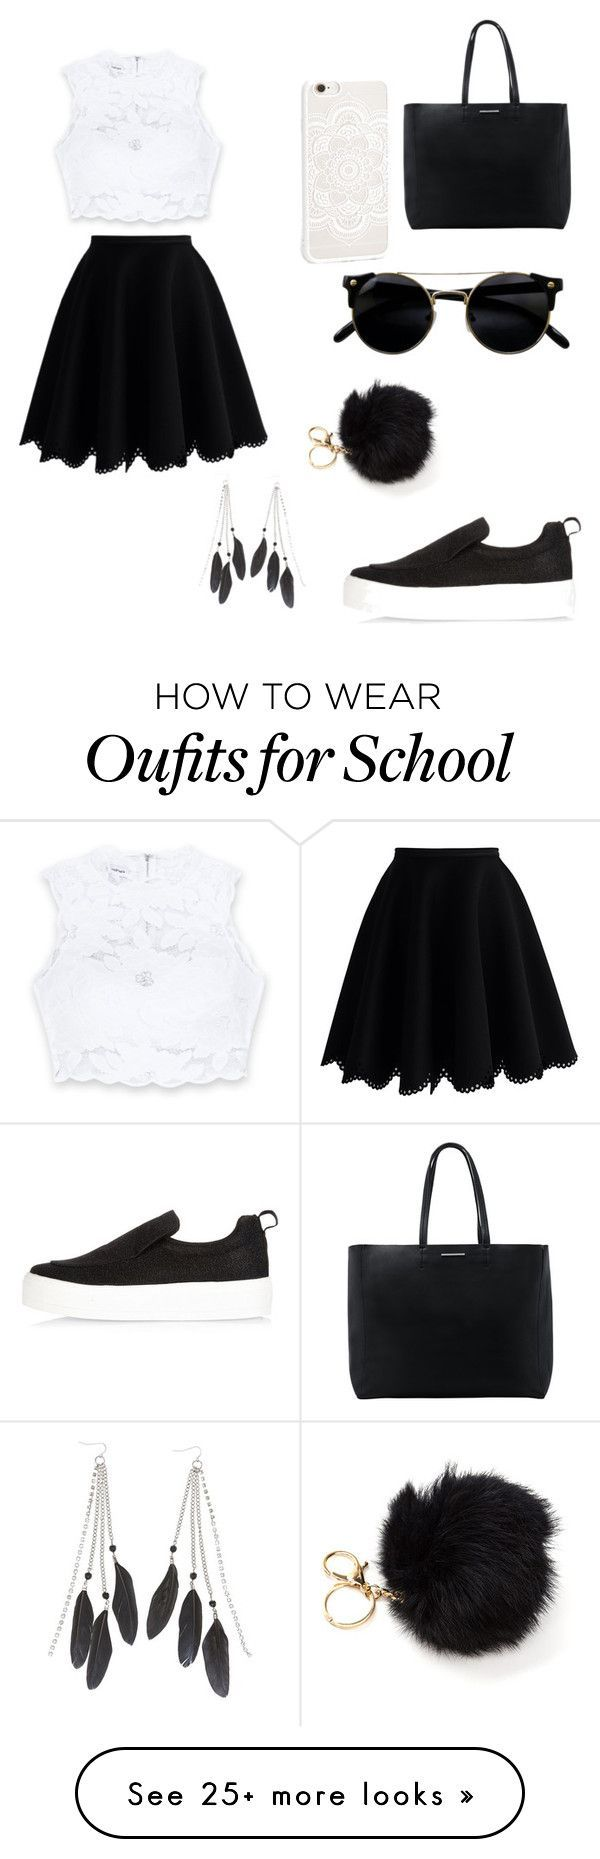 """""""Schools/Students"""" by katrislitvinenko on Polyvore featuring Bebe, Chicwish, MANGO, River Island and Charlotte Russe"""